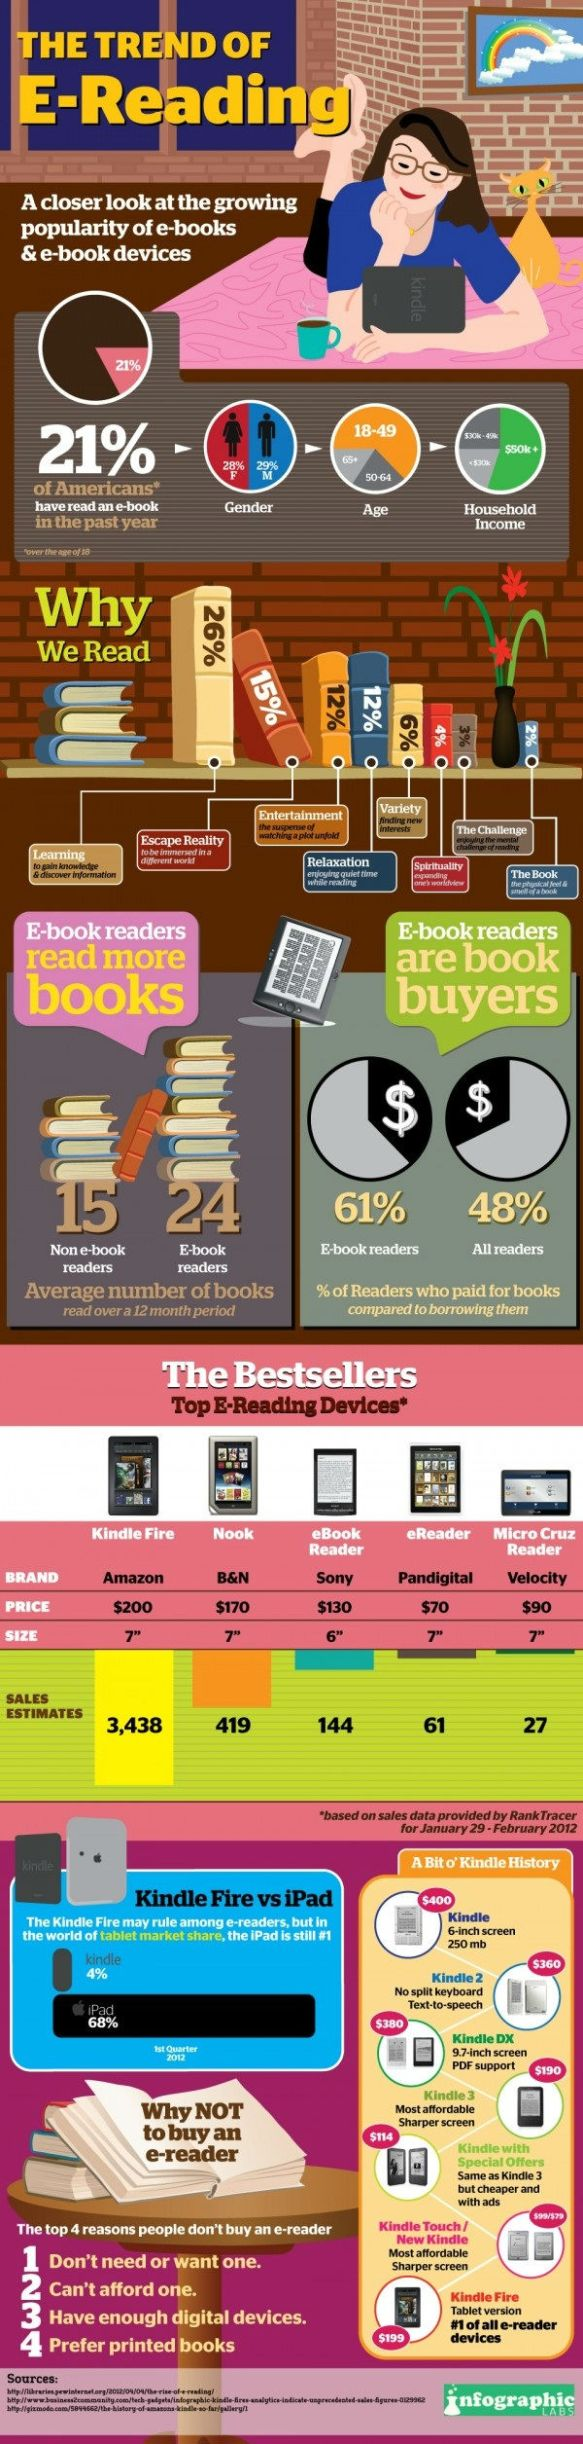 A closer look at the growing popularity of ebooks and ebook devices